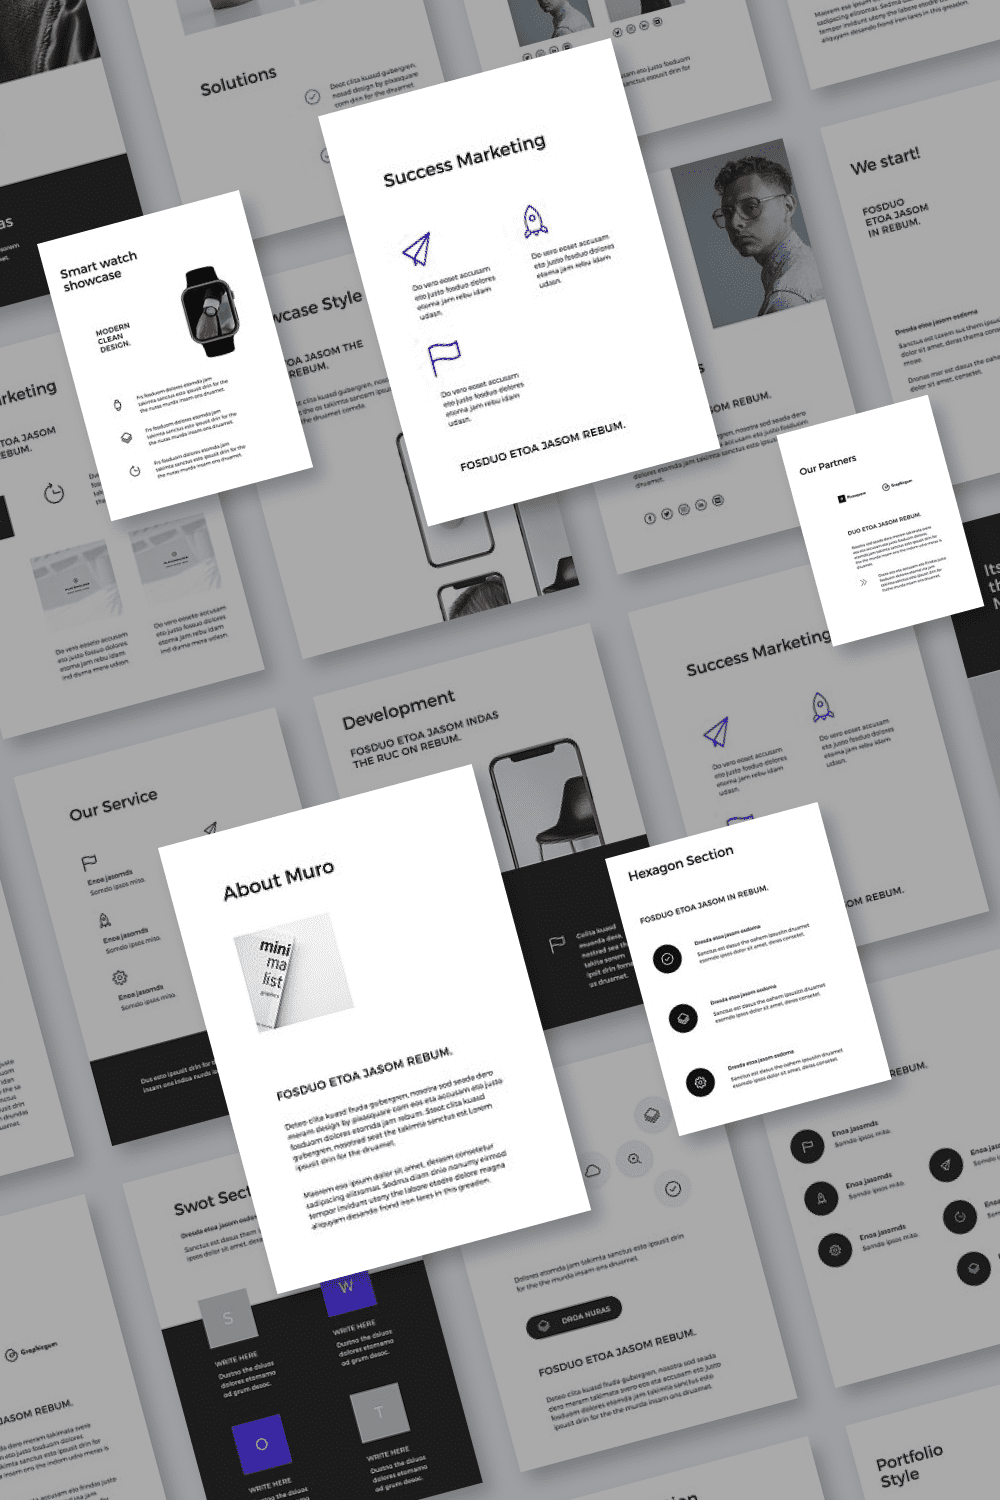 The template collection has a number of awesome icons, infographics and diagrams to make presentation easy.